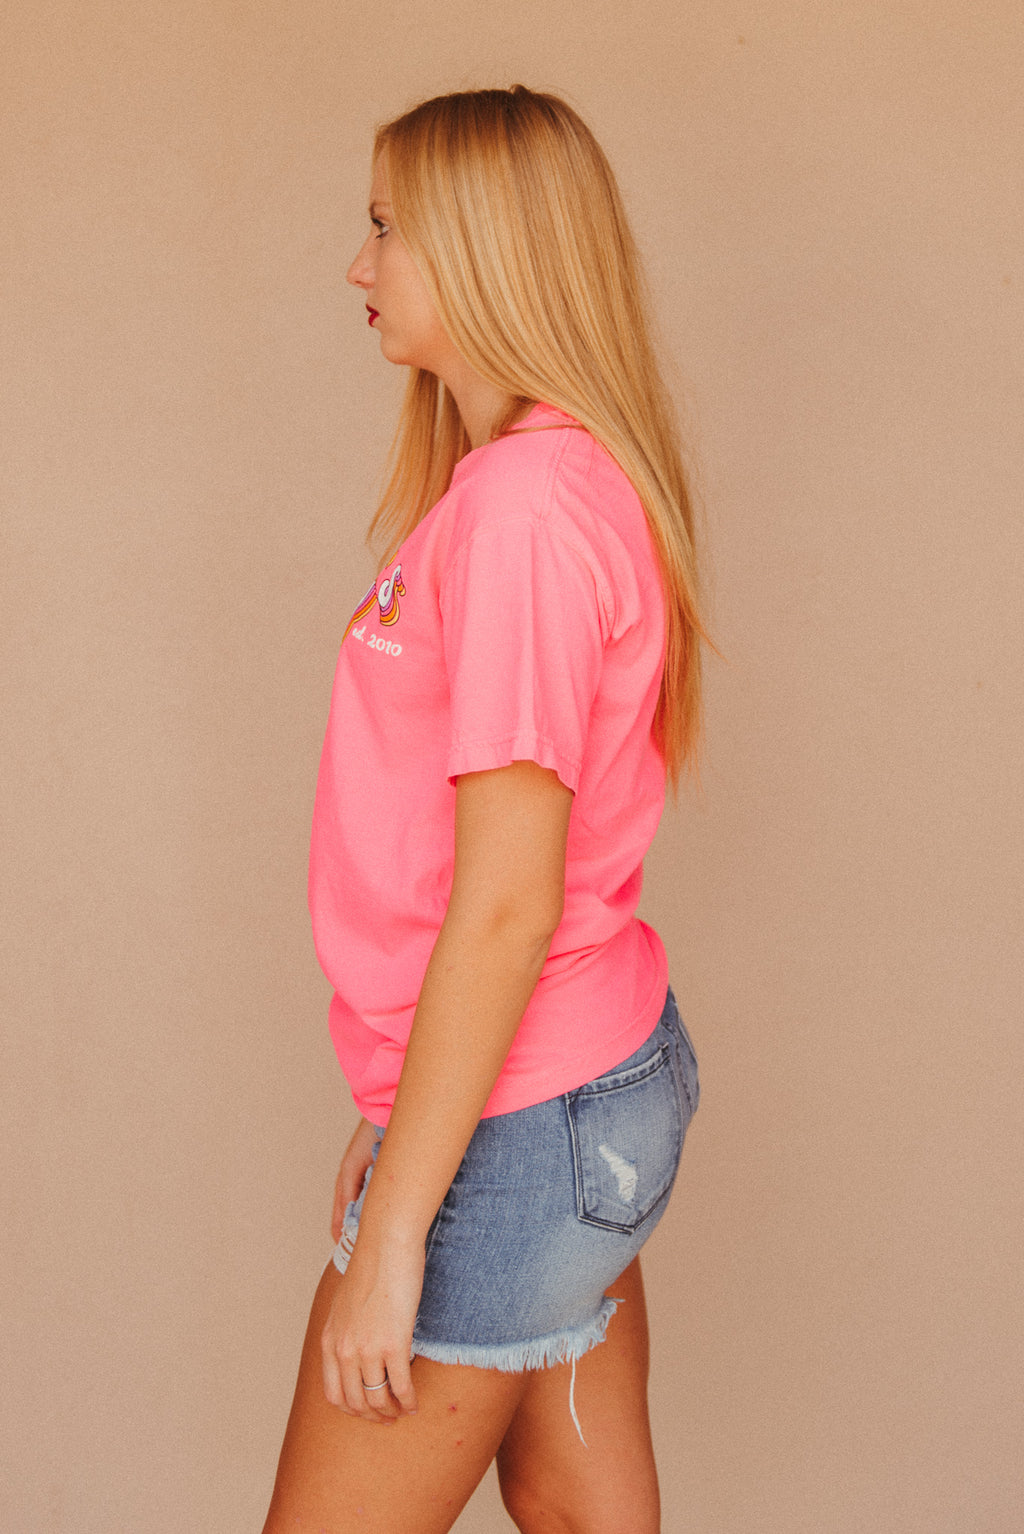 Retro J. Lilly's Unisex T-Shirt ~ Neon Pink - J. Lilly's Boutique